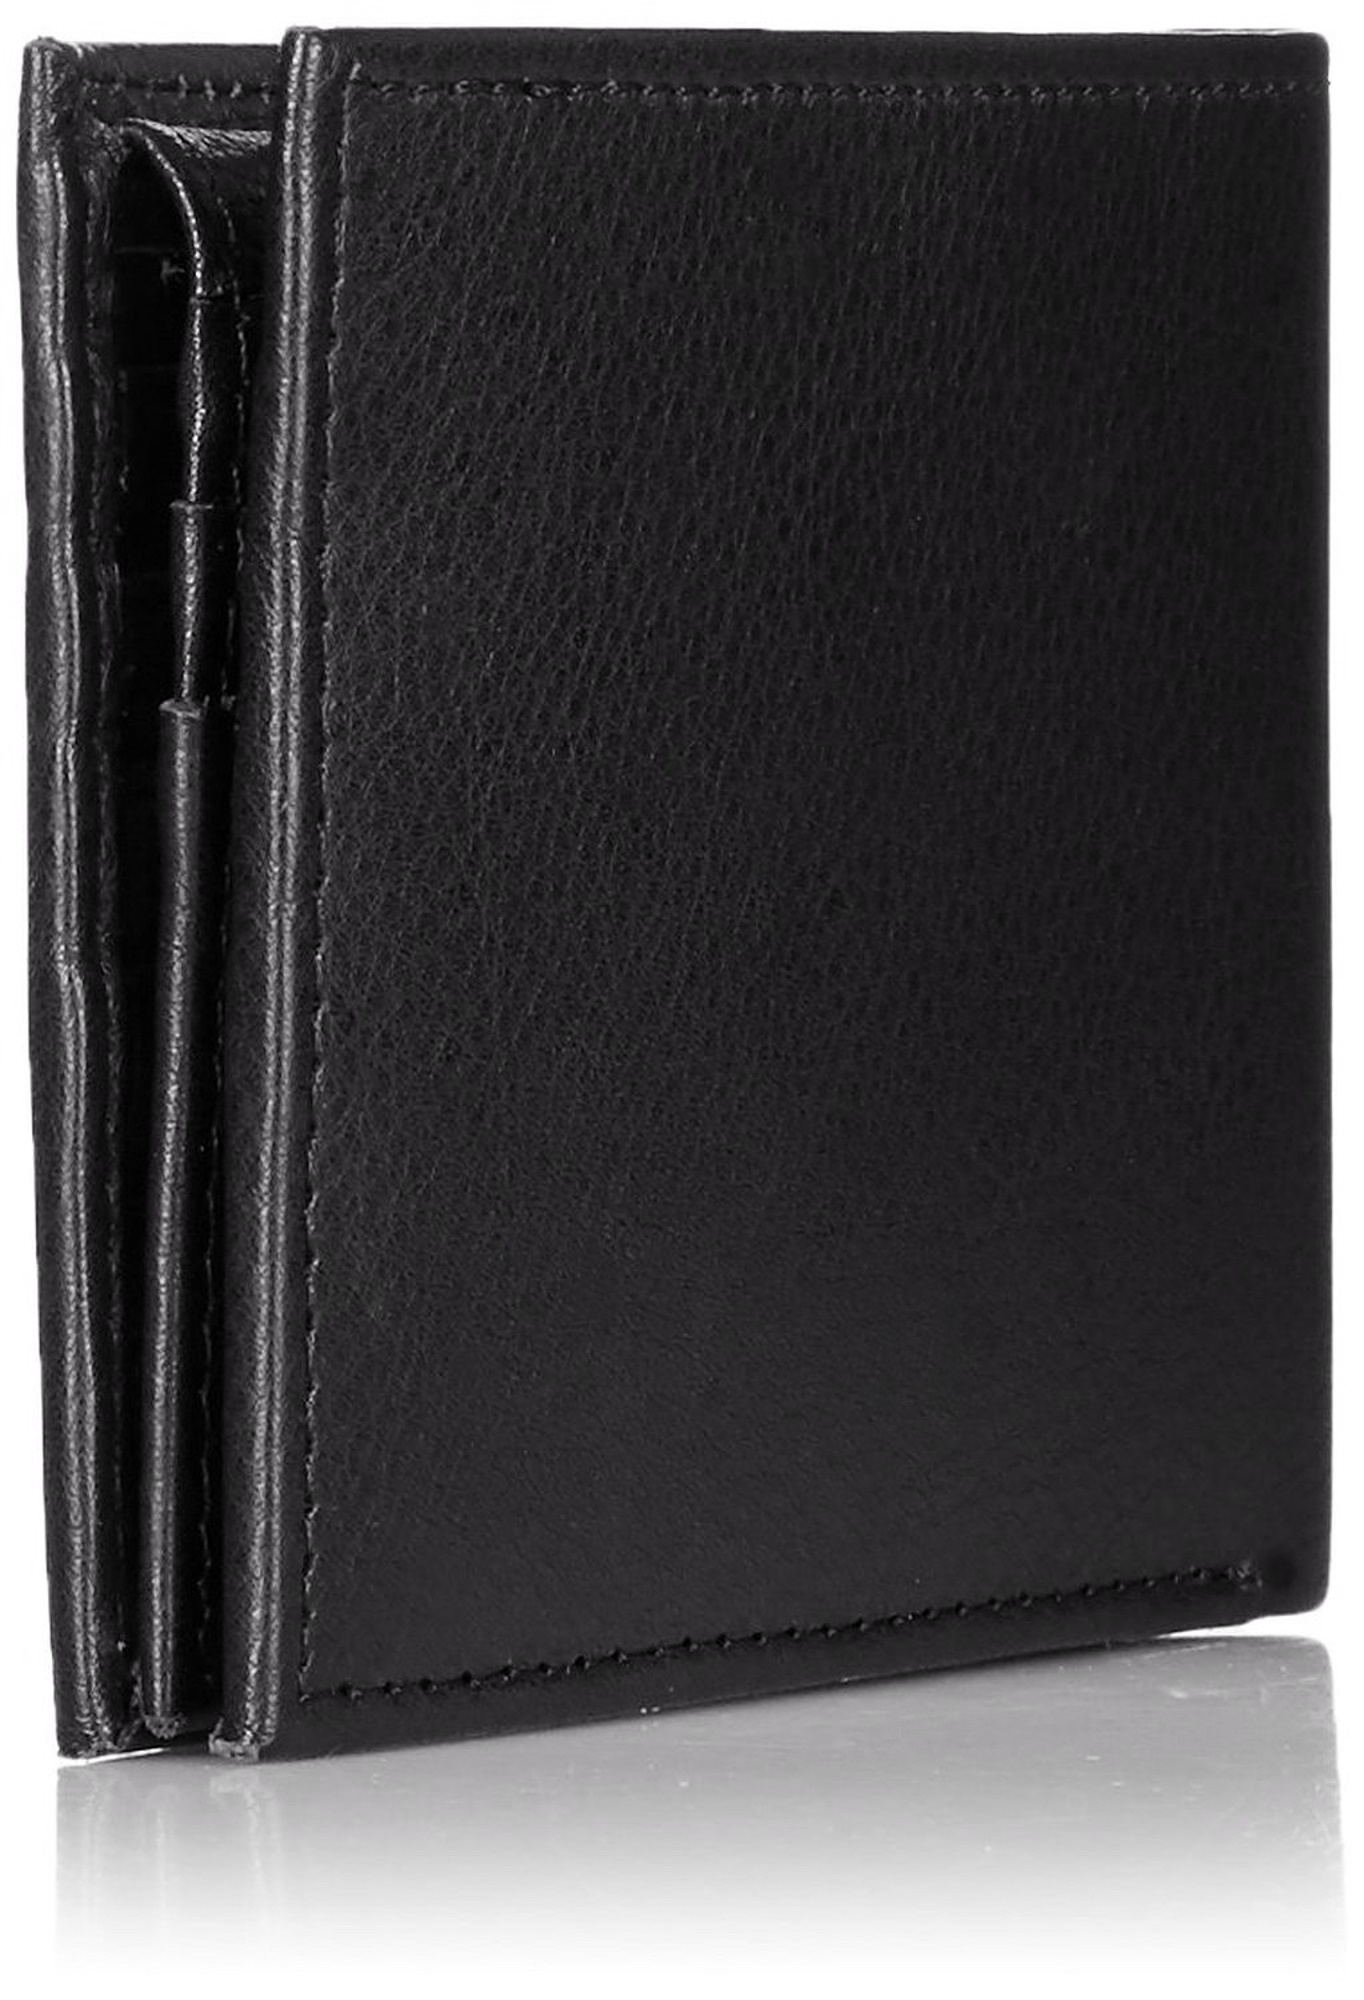 Alpine-Swiss-RFID-Blocking-Mens-Leather-Bifold-Wallet-Removable-ID-Card-Passcase thumbnail 19